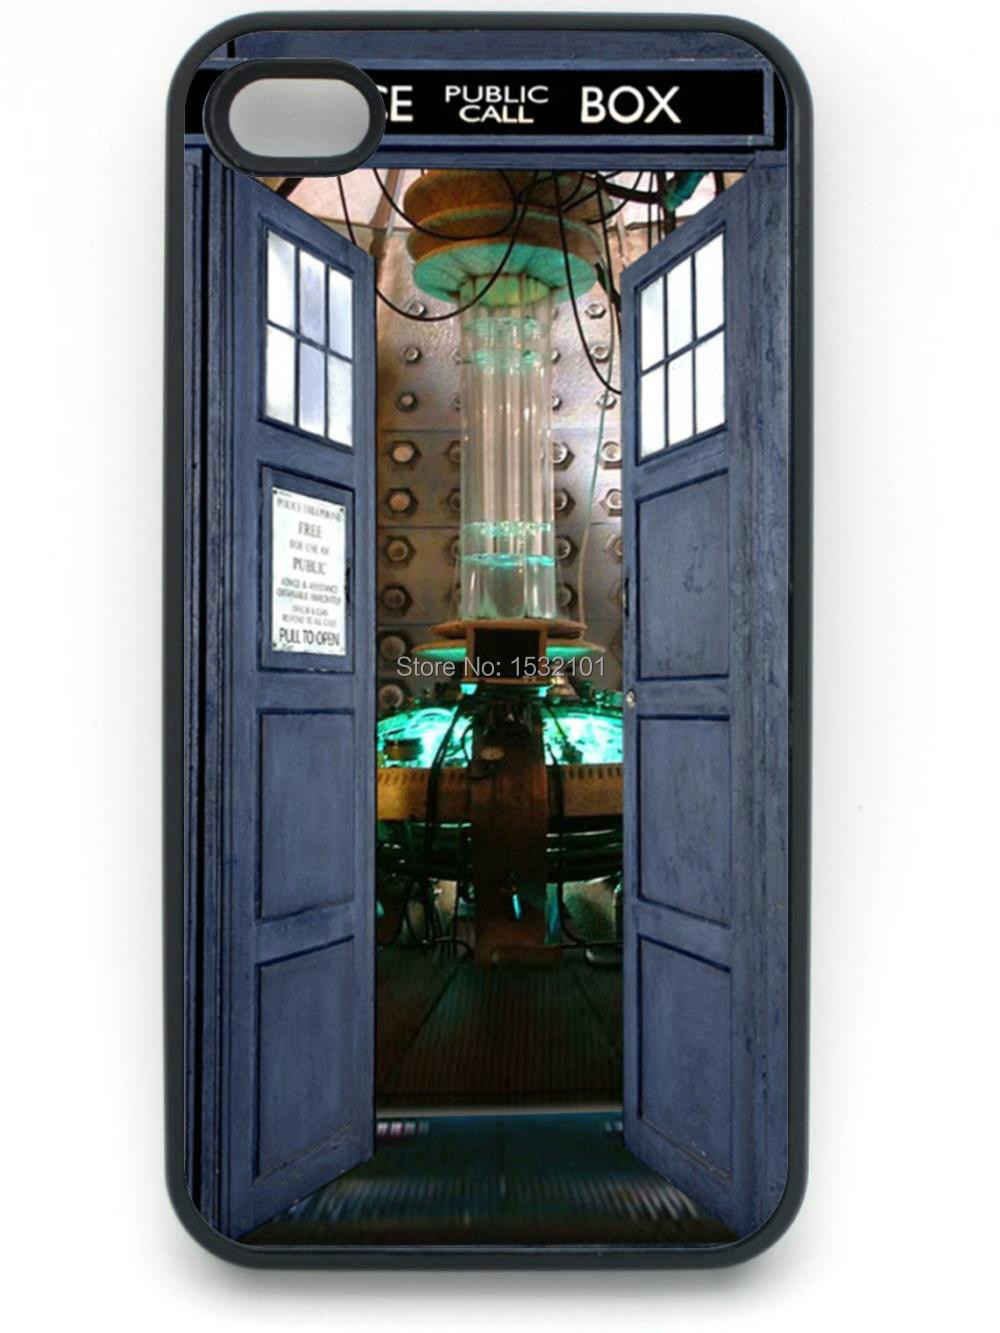 Doctor Who Tardis Box Cover Case for iPhone 4 4S 5 5S 5C 6 6S 7 8 Plus Samsung Galaxy S3 S4 S5 Mini S6 S7 S8 Edge Plus A3 A5 A7